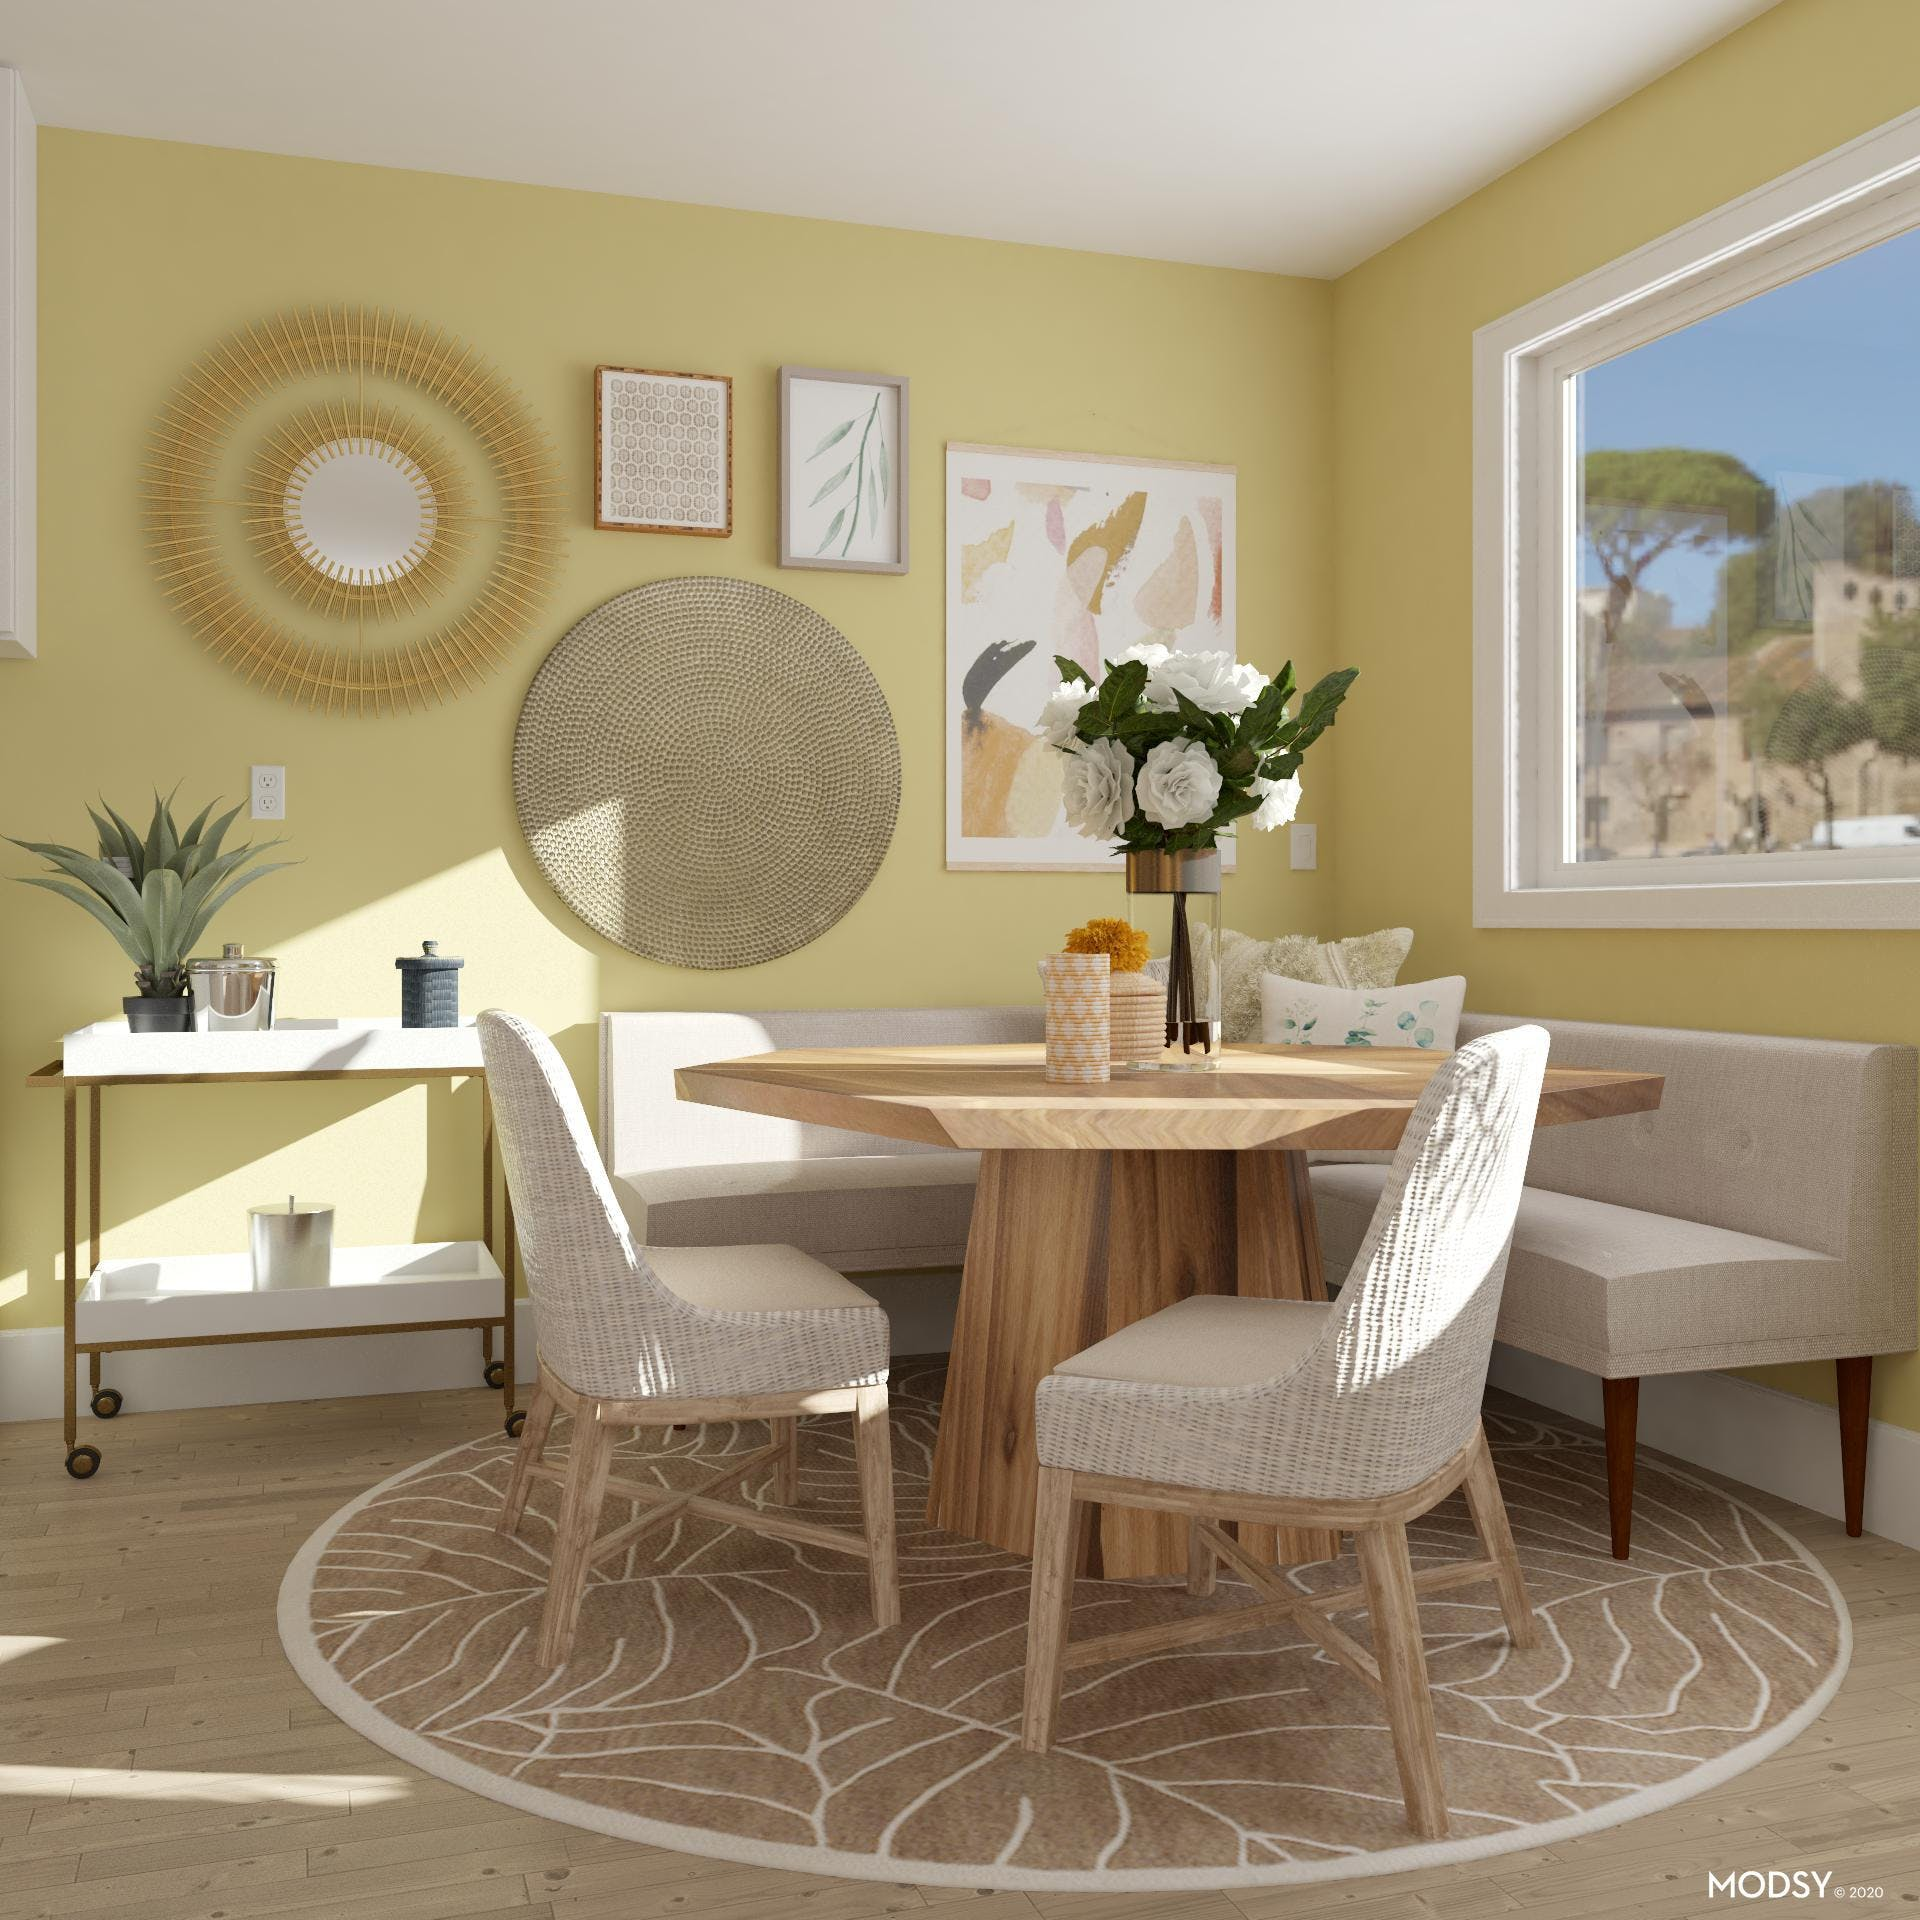 Let the Sunshine in Breakfast Nook